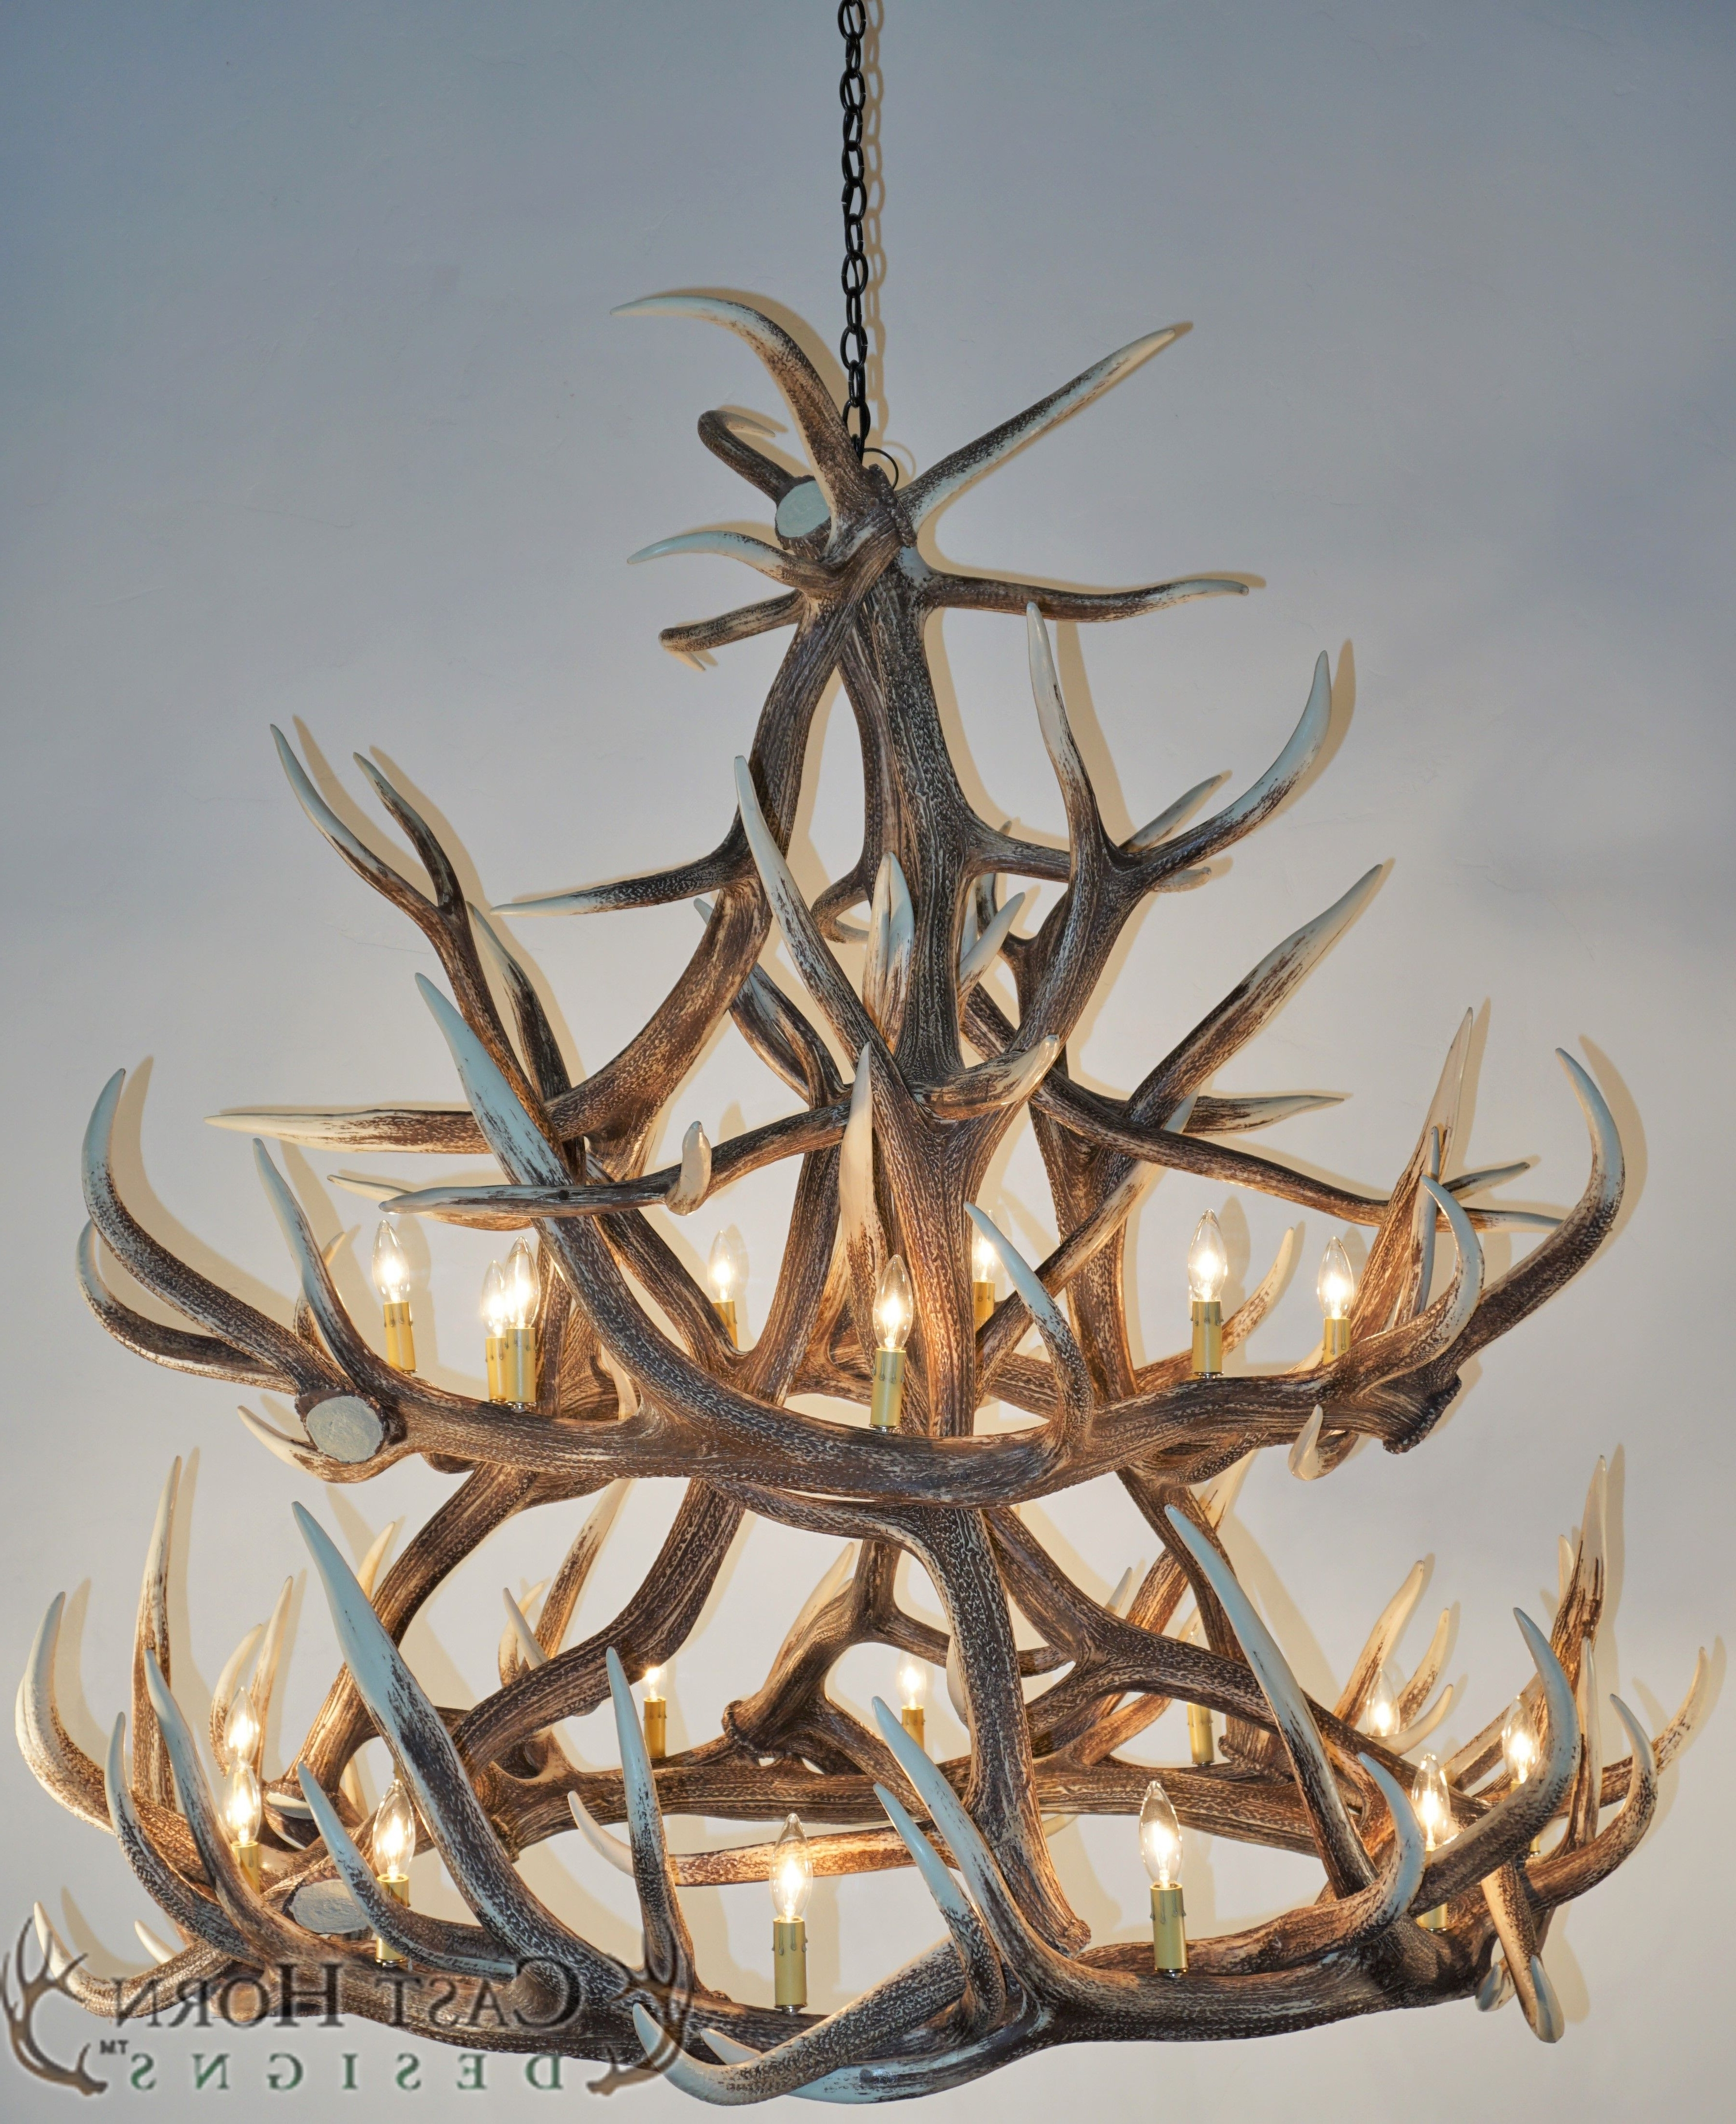 White Antler Chandelier In Most Up To Date Chandeliers : White Antler Chandelier Inspirational Lighting Elk (View 9 of 15)